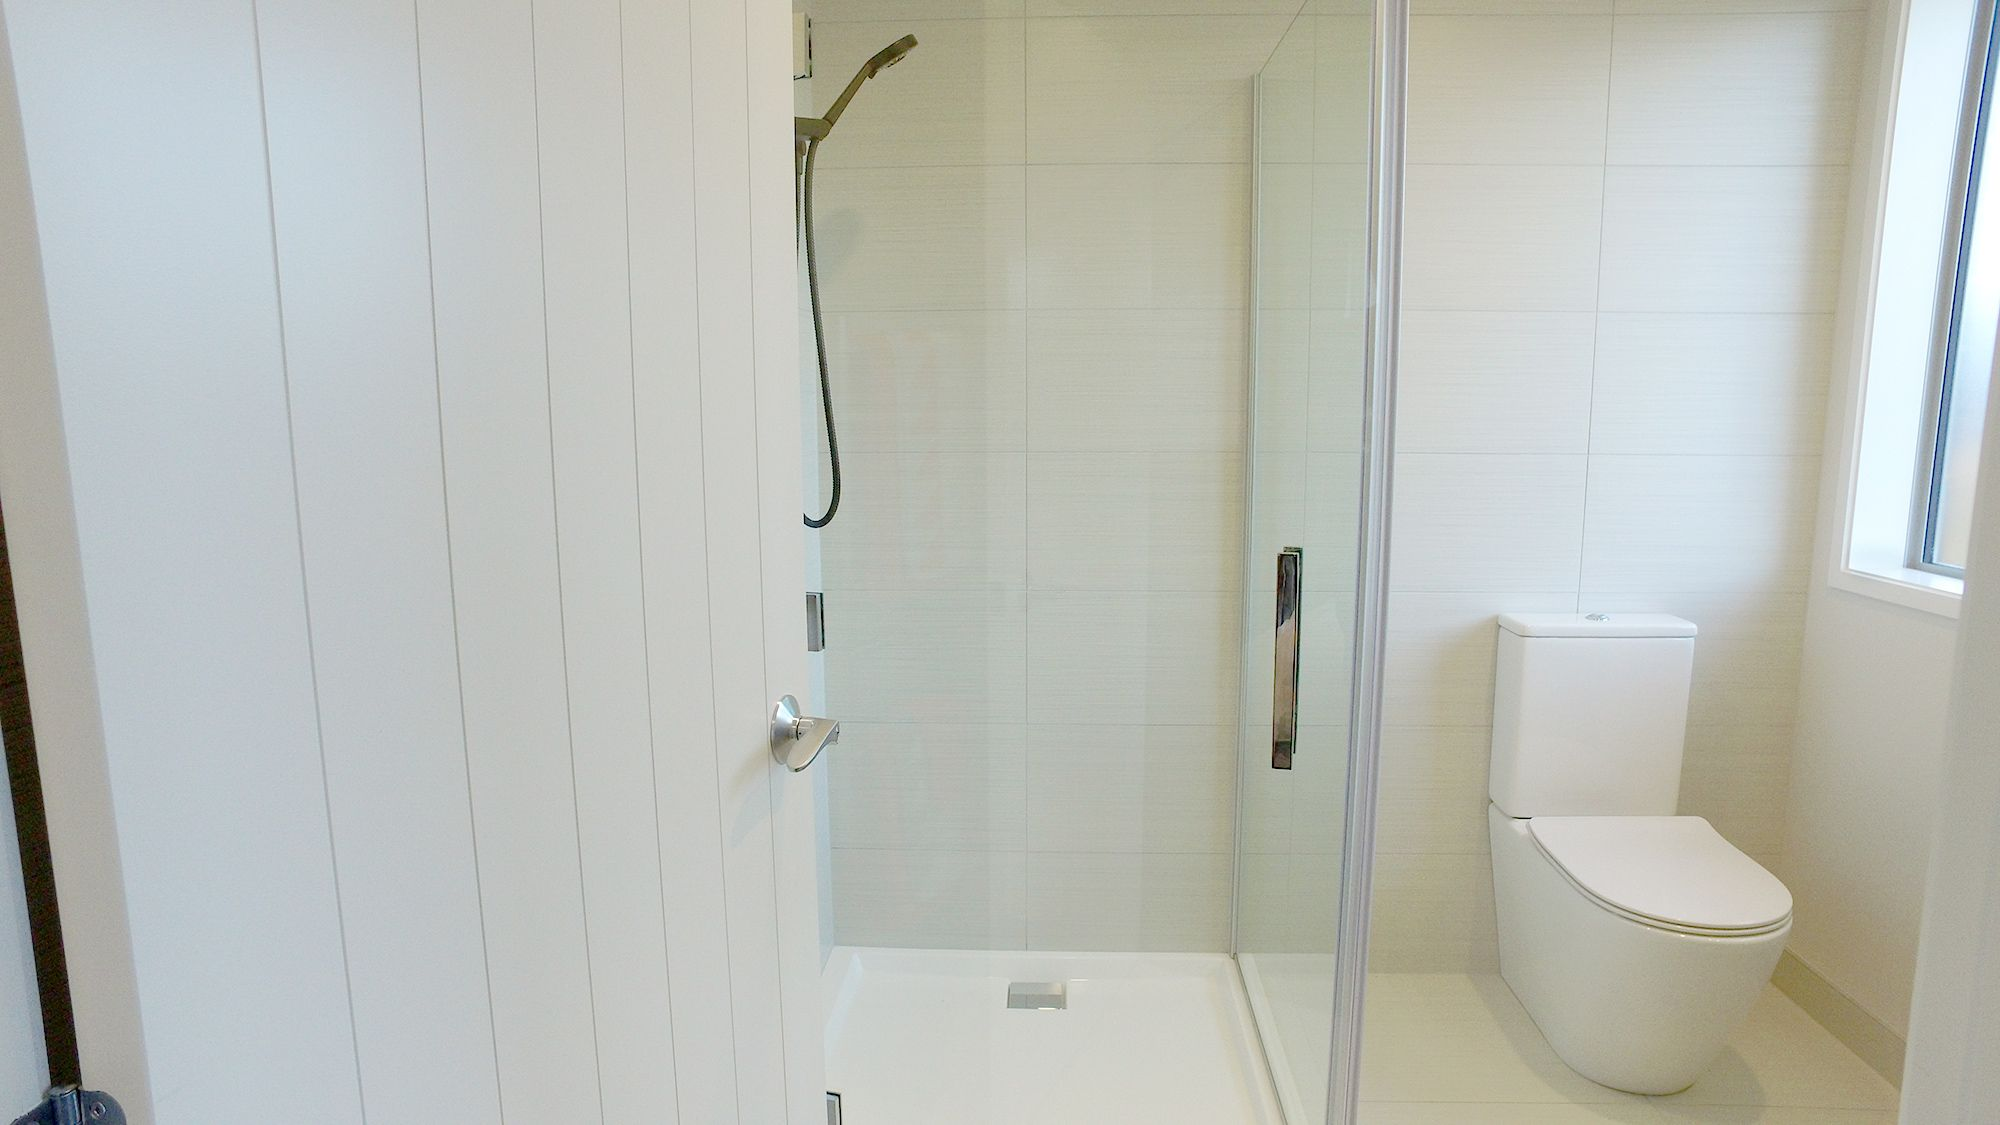 Athena Lifestyle tiled shower Alcove enclosure 1mx1m with 2 x wall ...